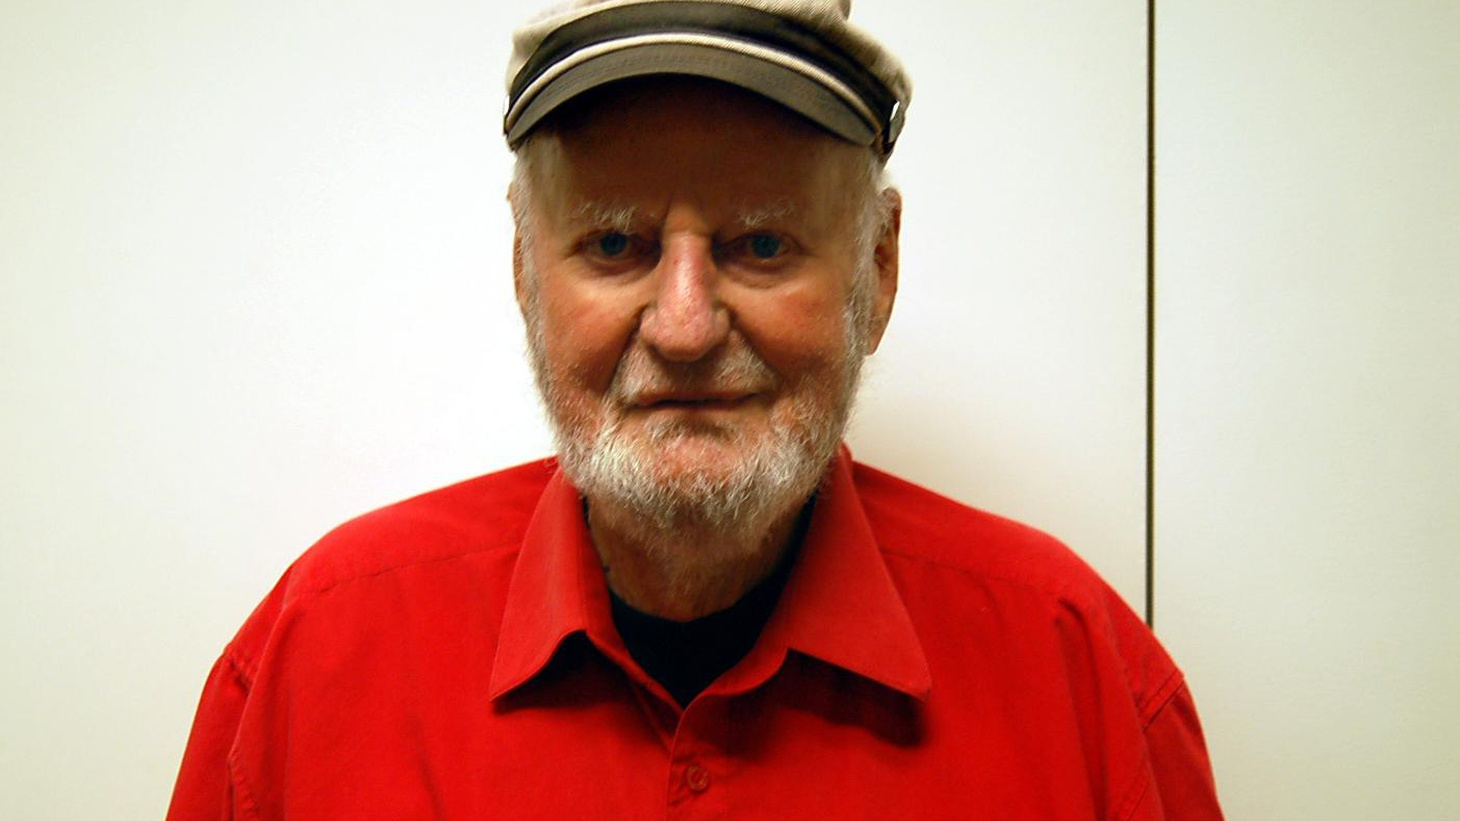 Lawrence Ferlinghetti, 93-year-old renowned Beat generation poet and co-founder of City Lights Booksellers, on his latest adventure, a dire warning for America.